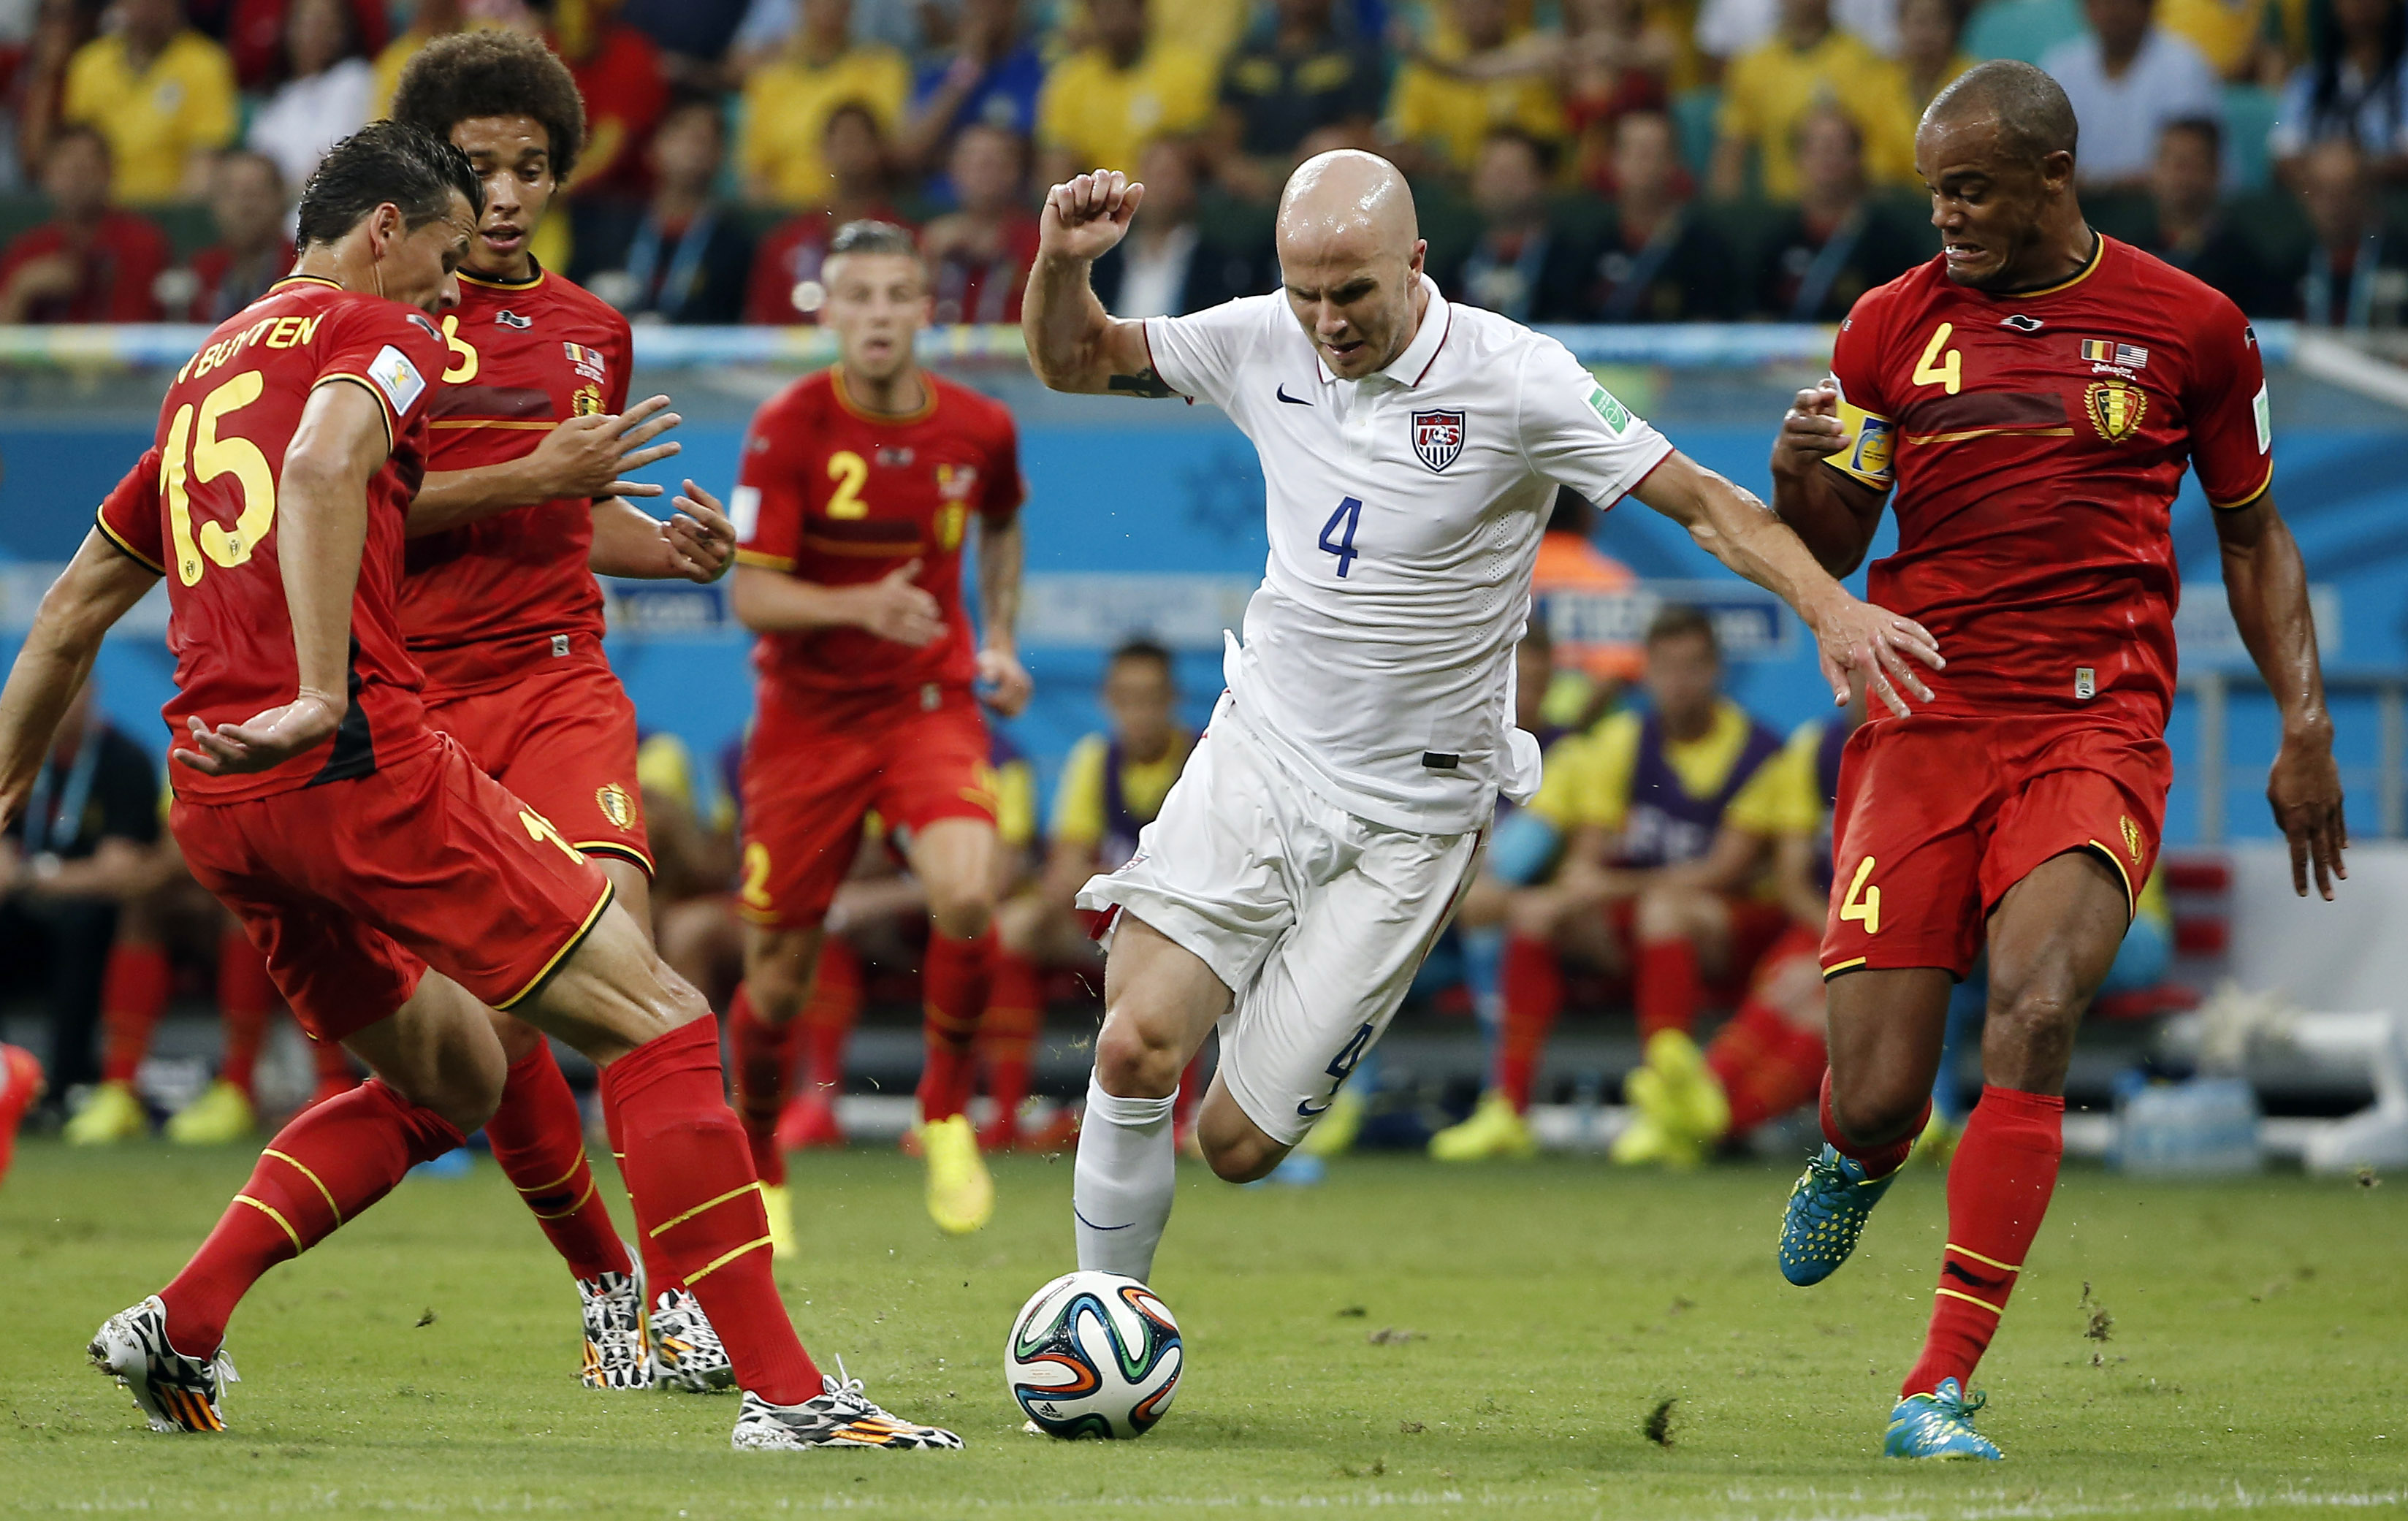 Confederations Cup preview and prediction